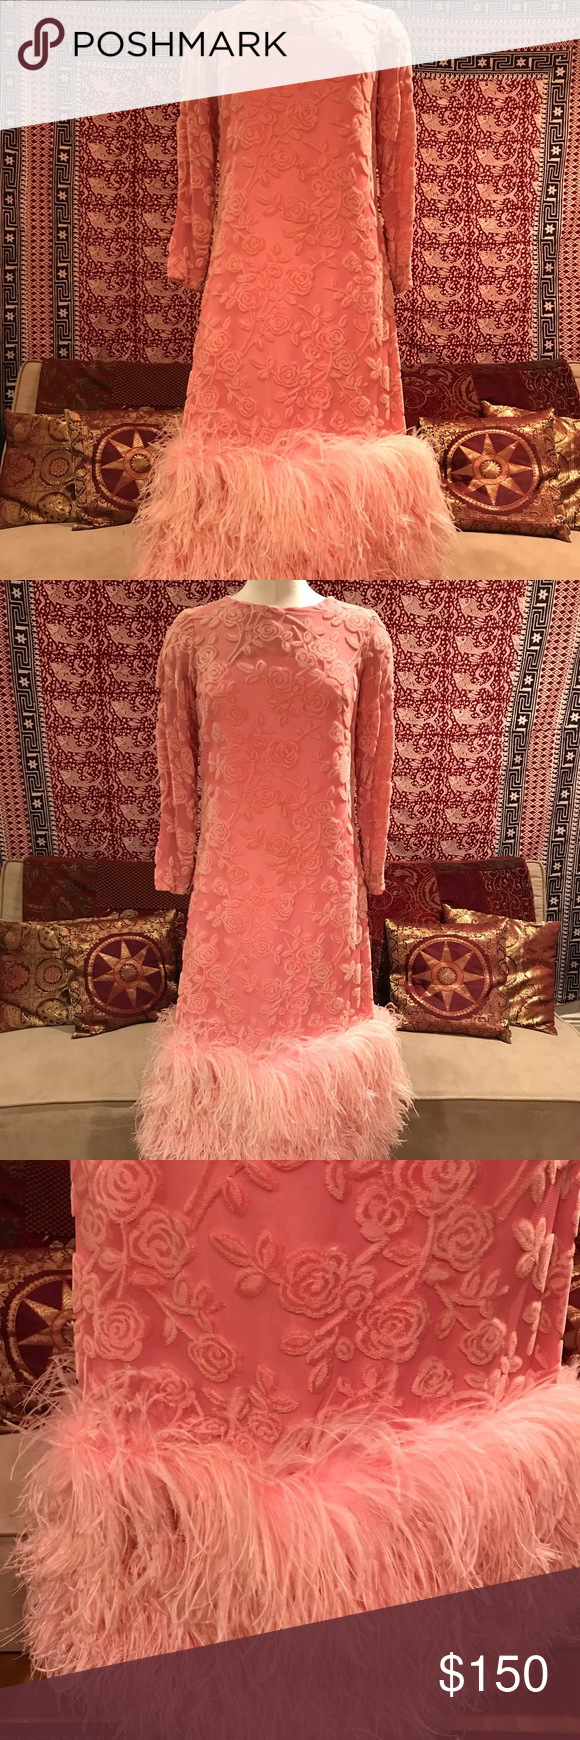 Vintage Lillie Rubin Dress | Ostrich feathers, Emboss and Feathers